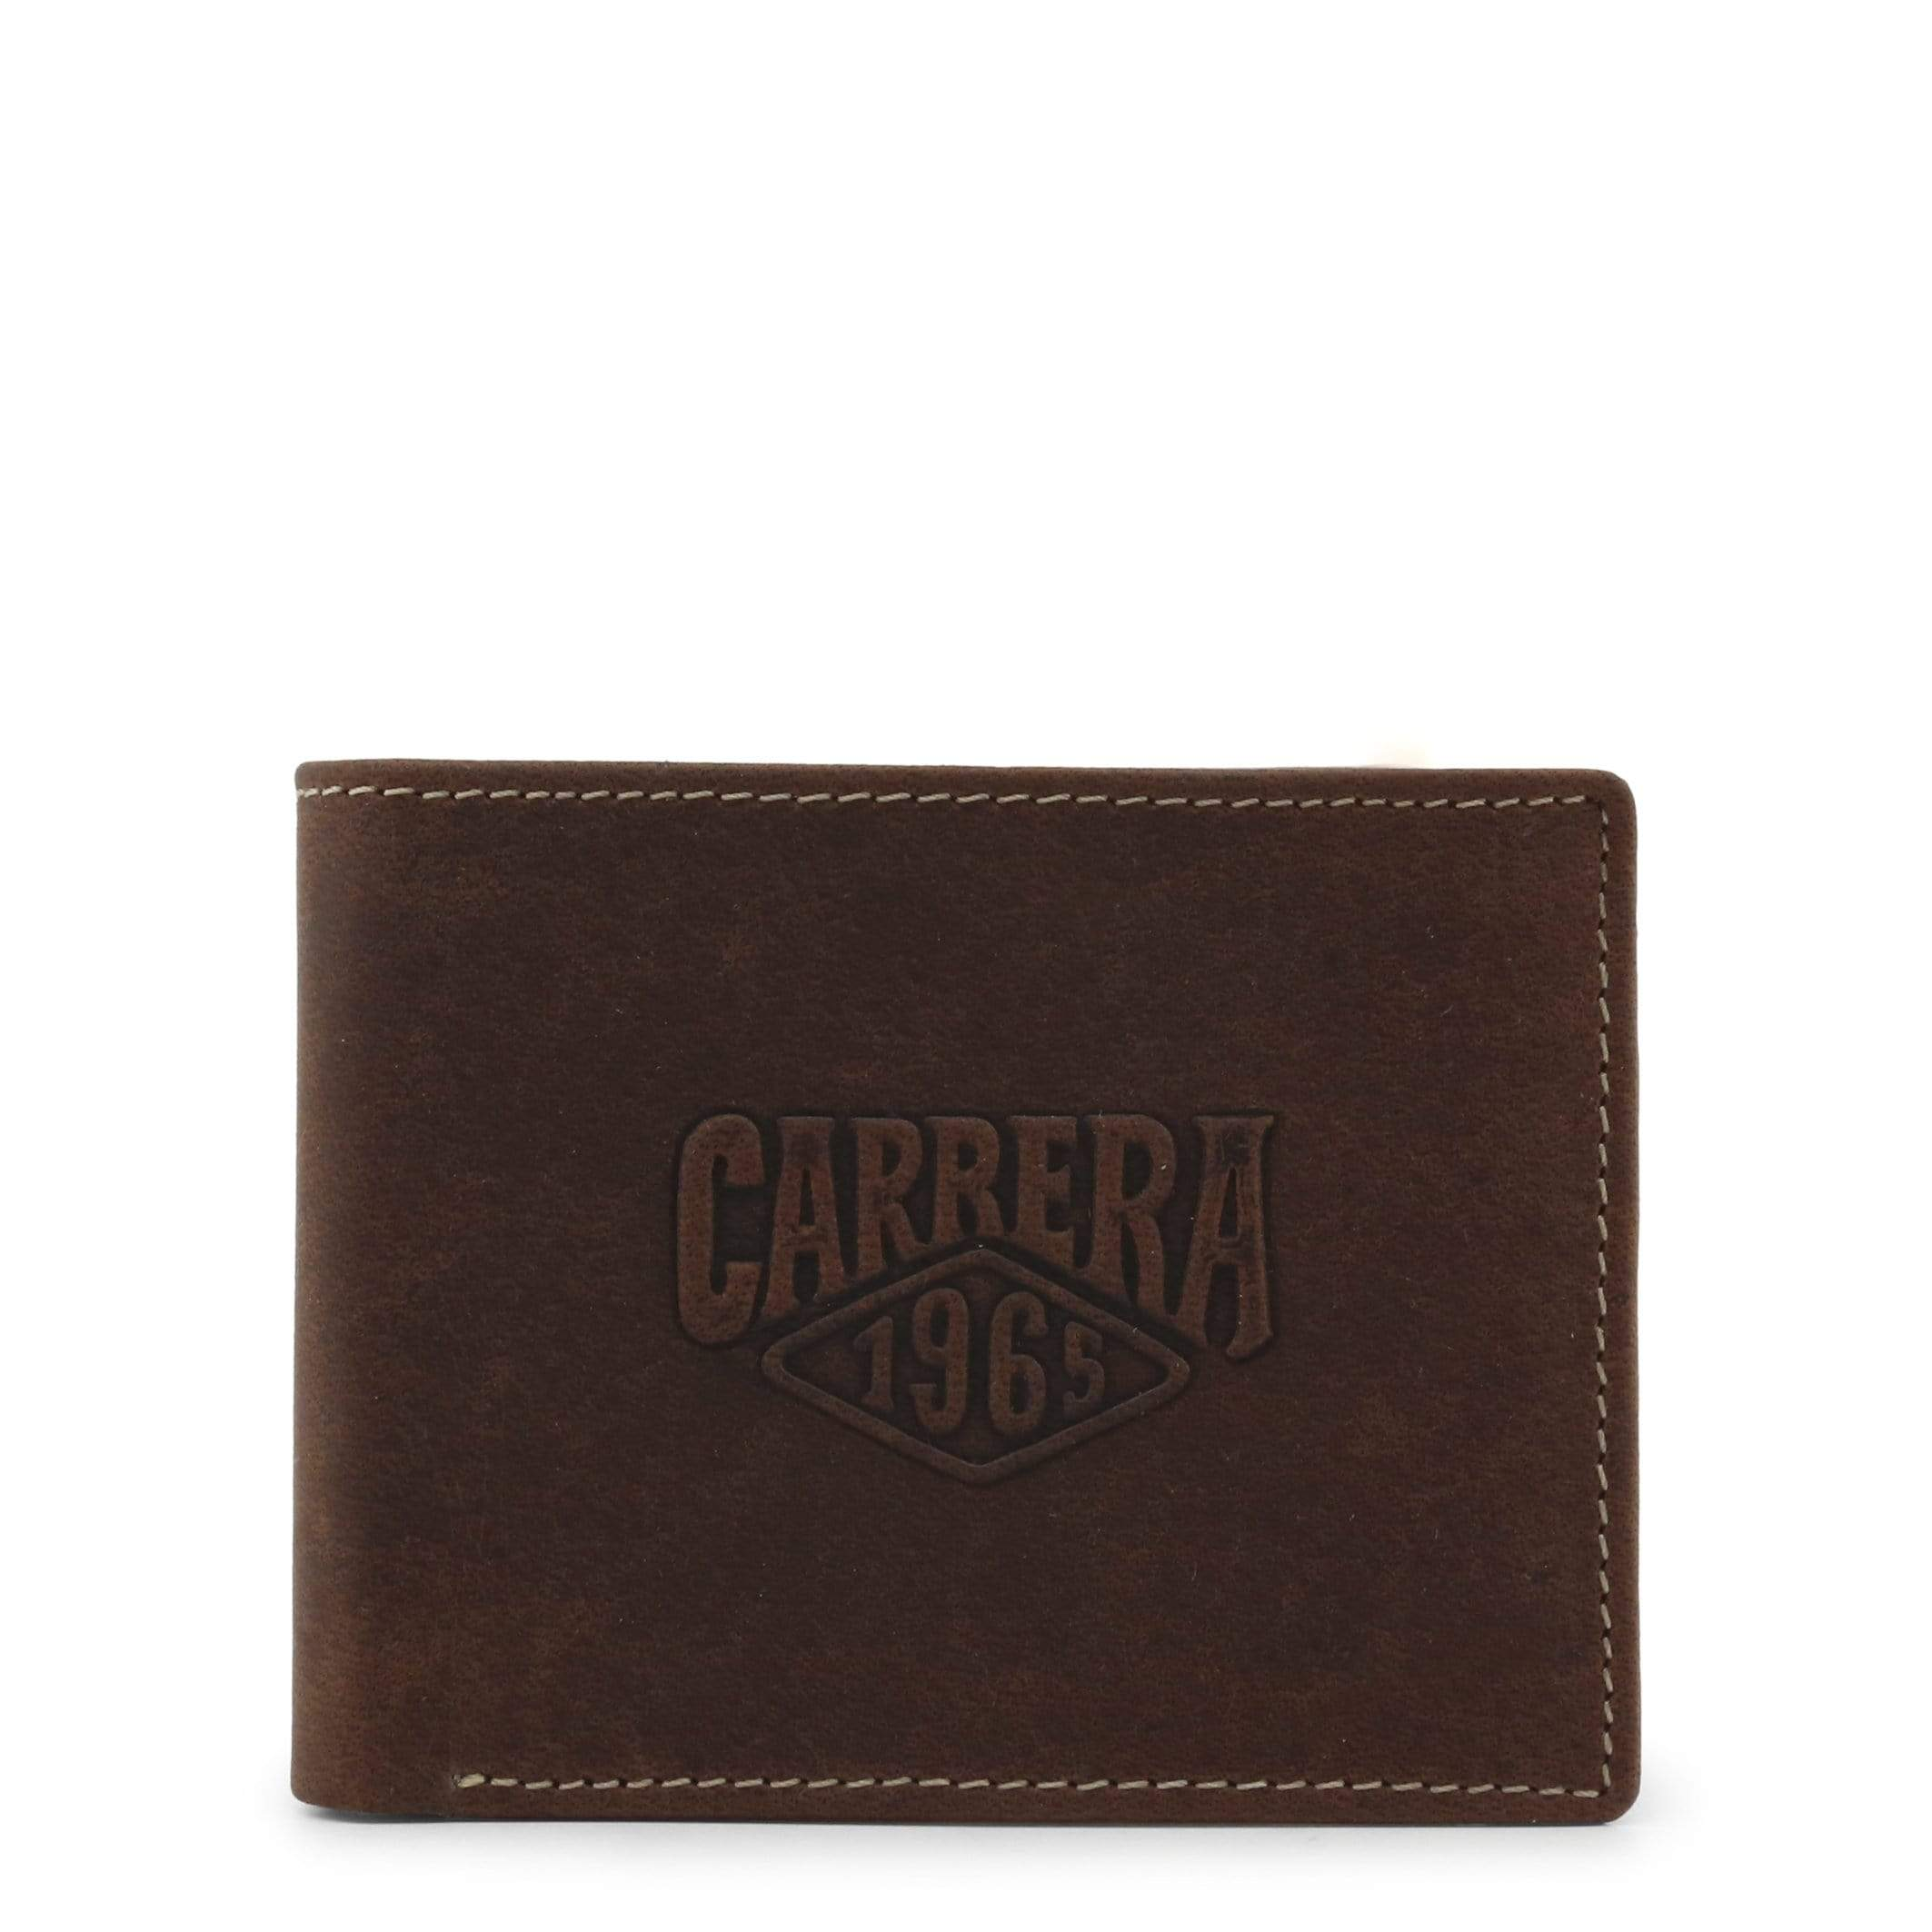 Carrera Jeans Accessories Wallets brown / NOSIZE Carrera Jeans - CB872B